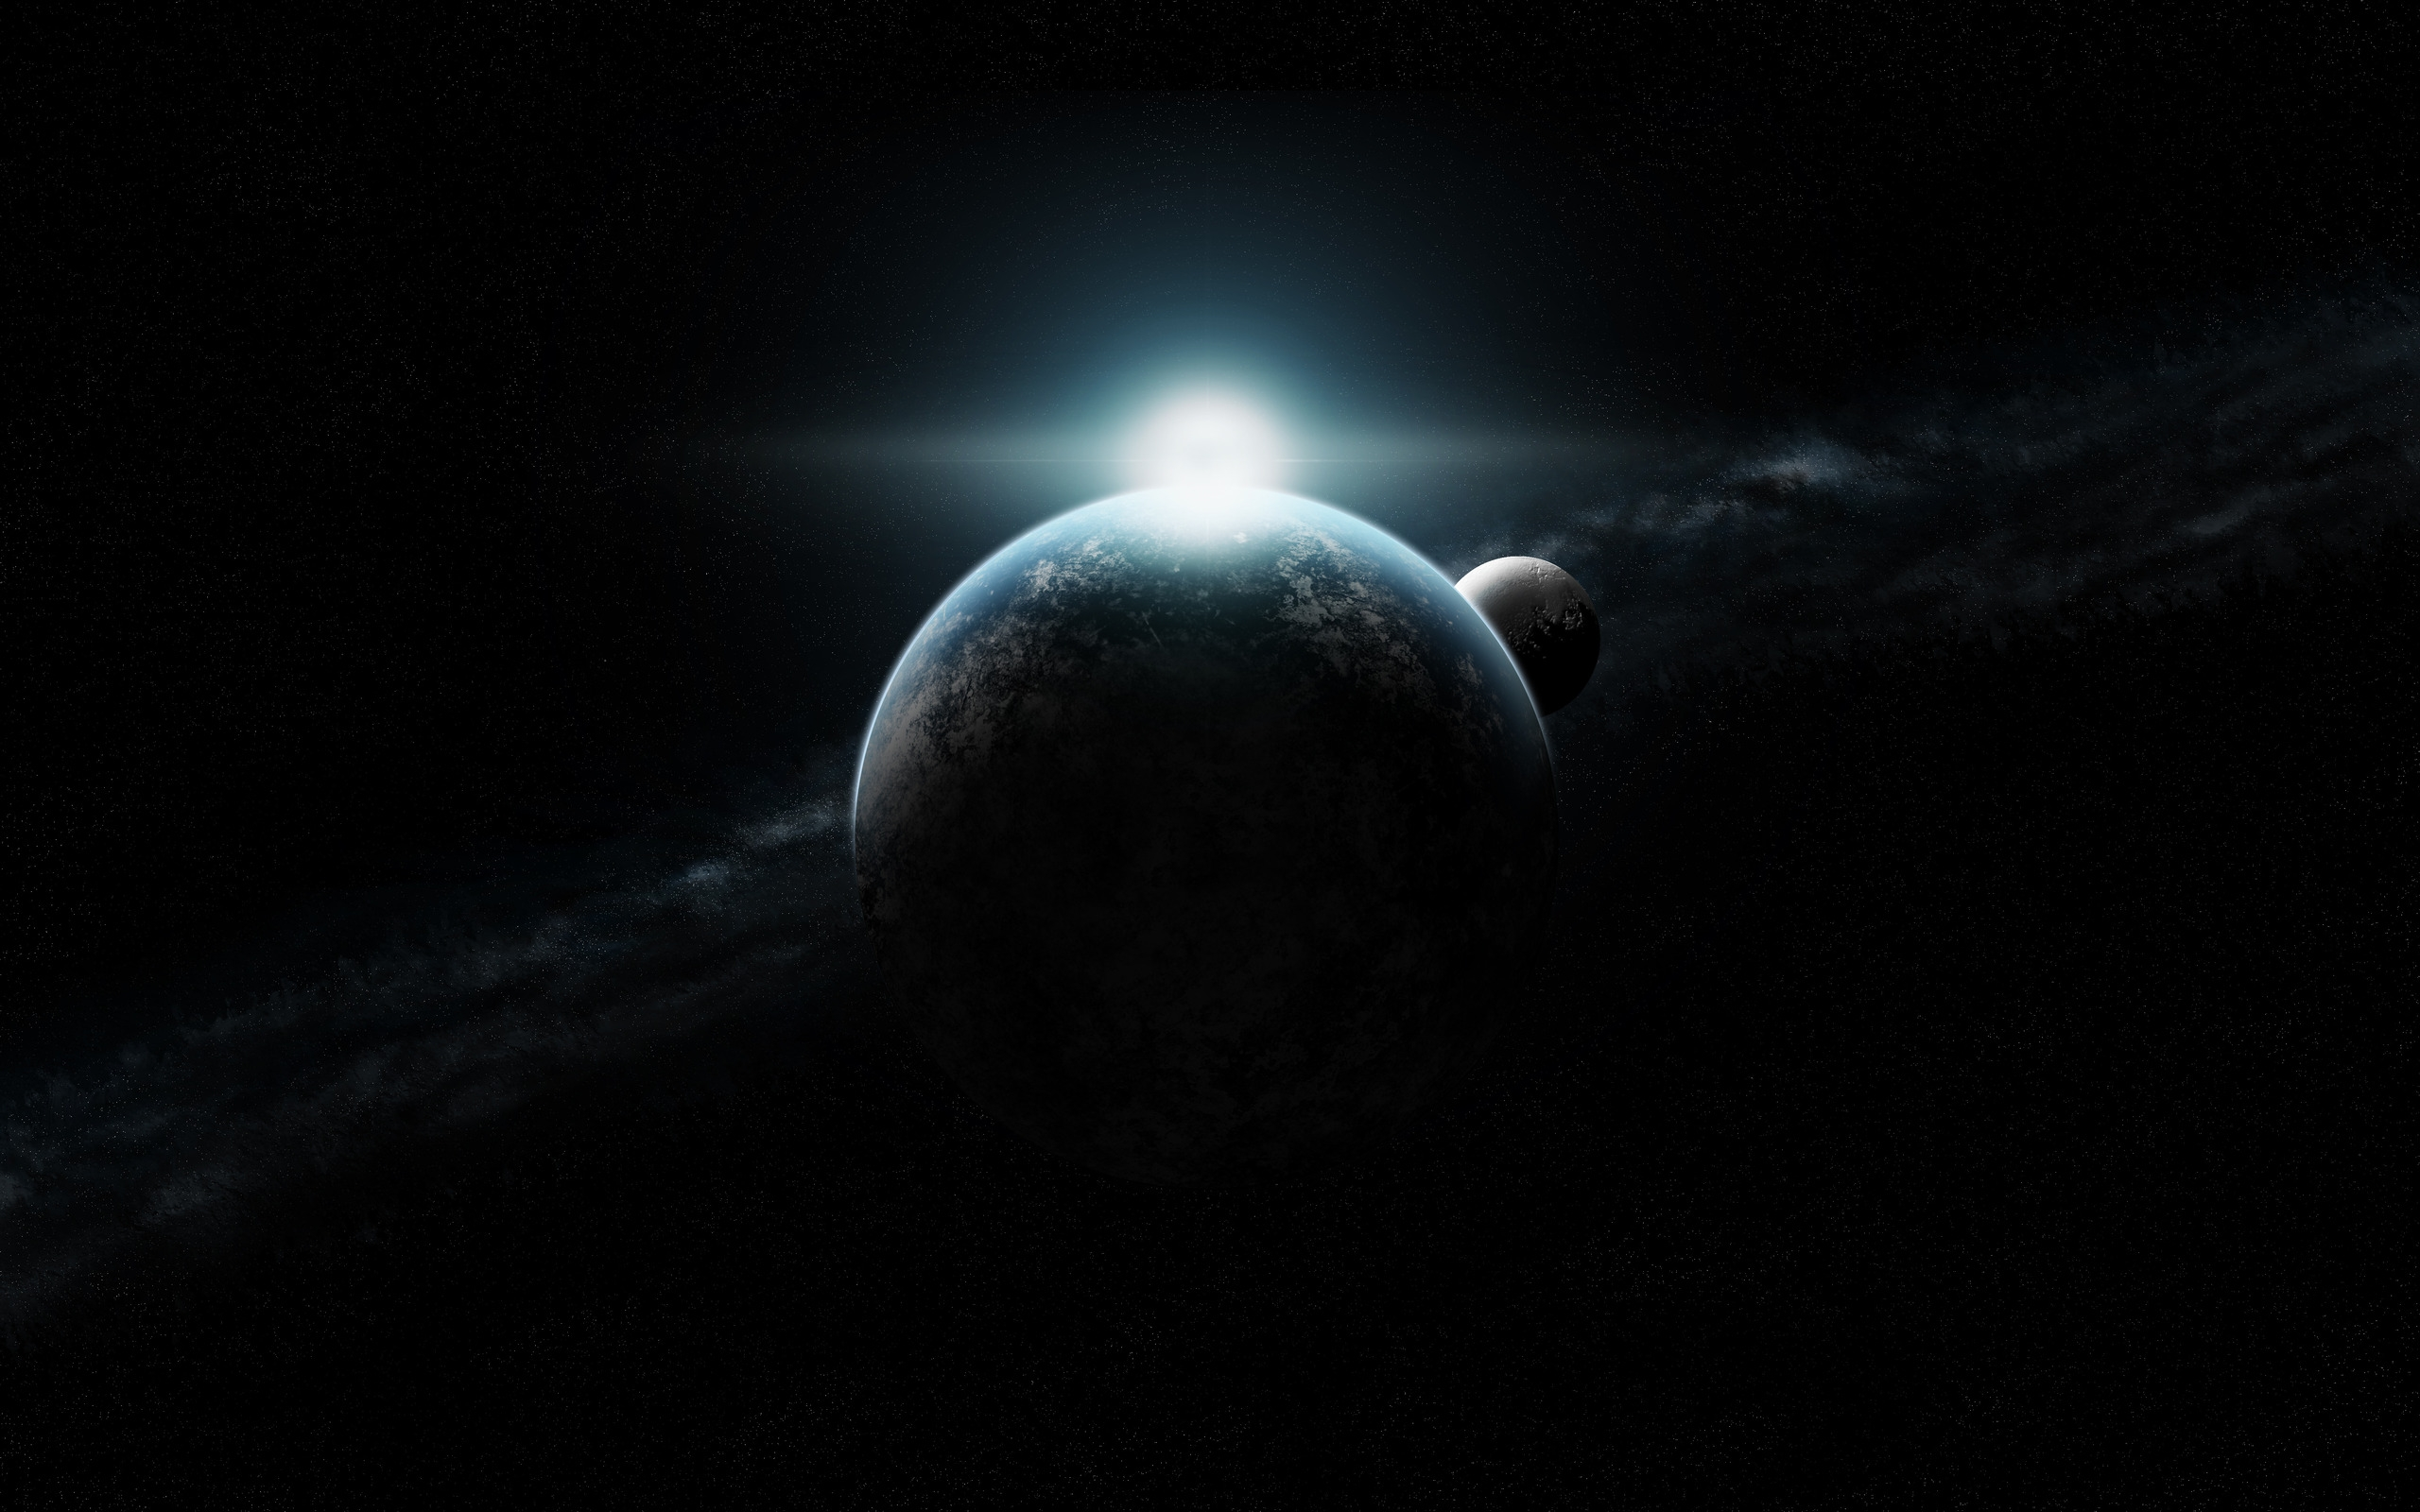 Sci Fi Planets Hd X Id 1609068 With Resolutions 25601600 Pixel 2560x1600